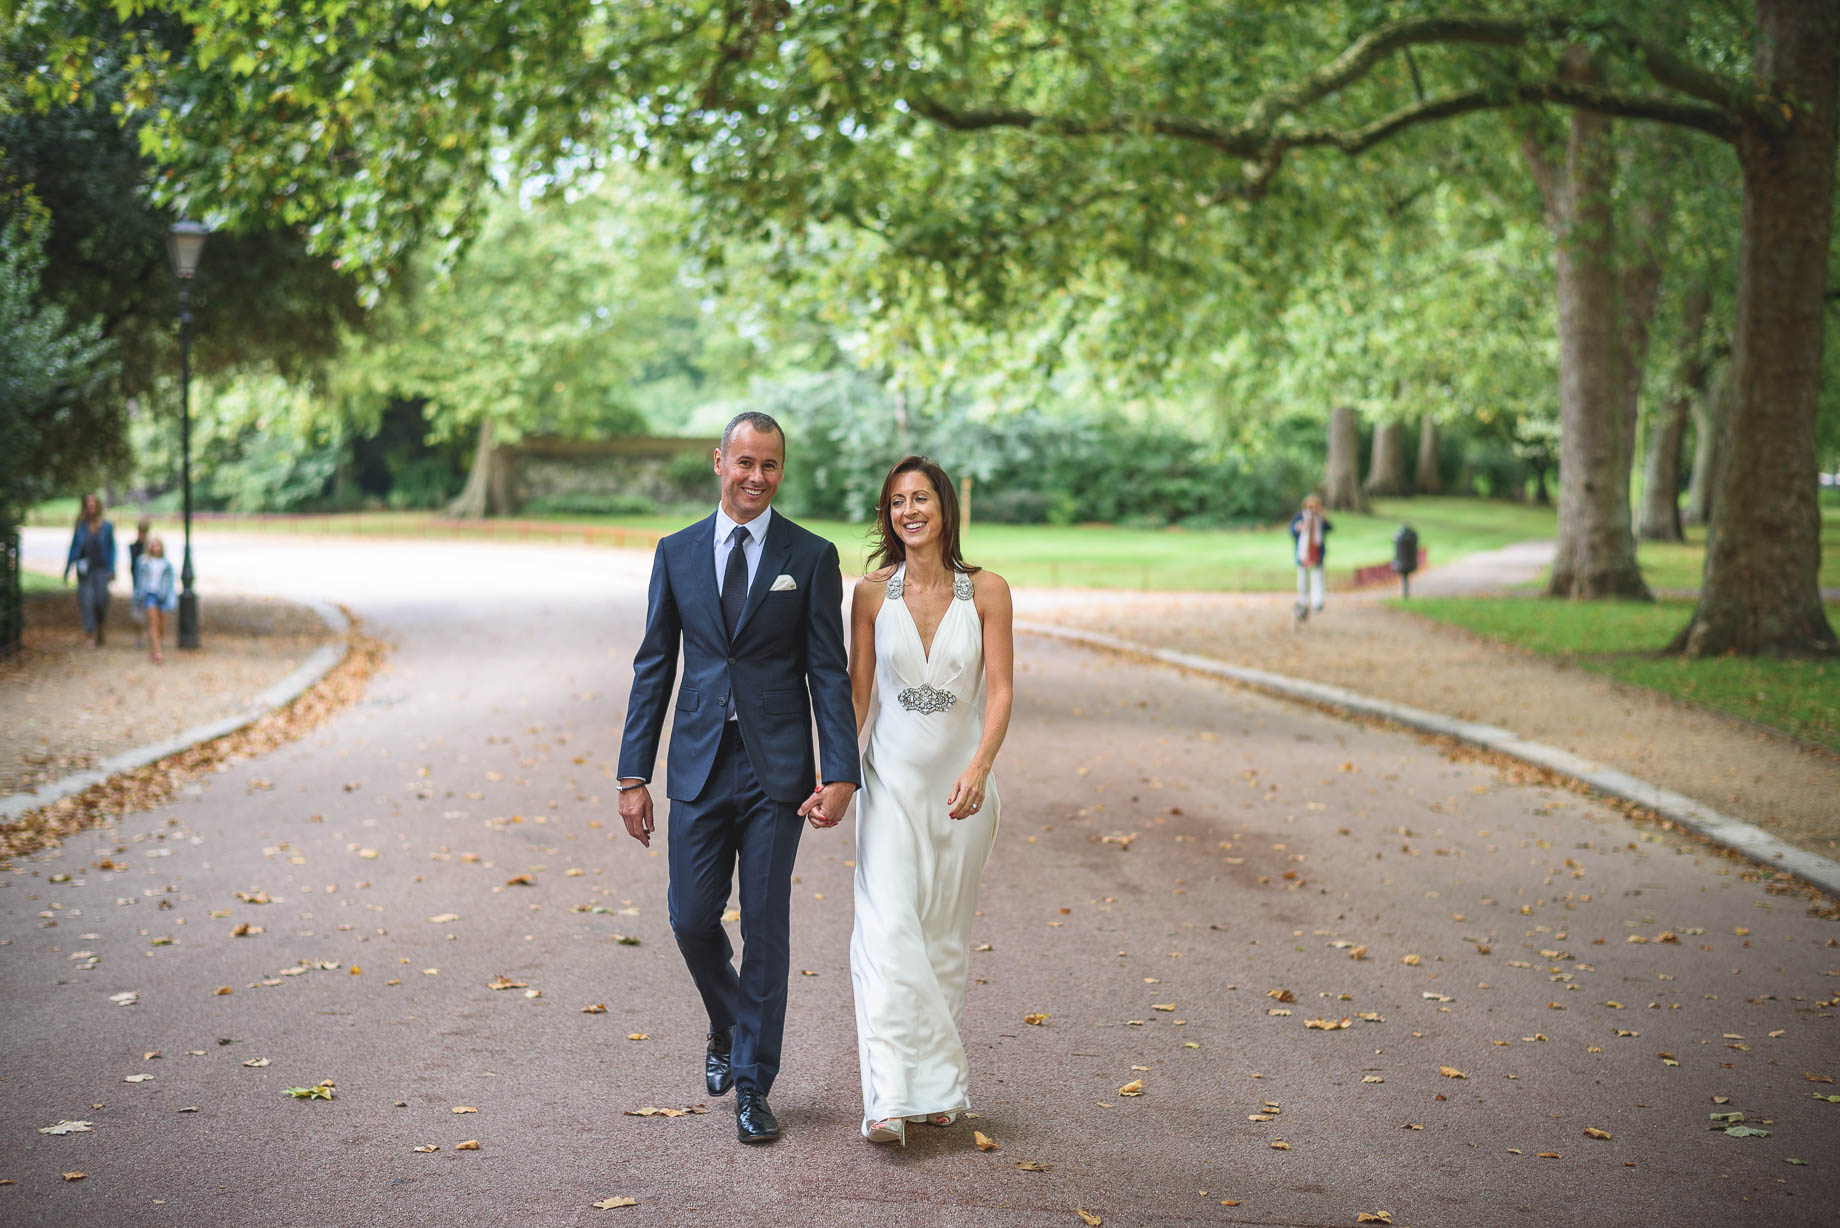 Chelsea and Mayfair wedding photography - Guy Collier - Vicki and Damien (83 of 126)